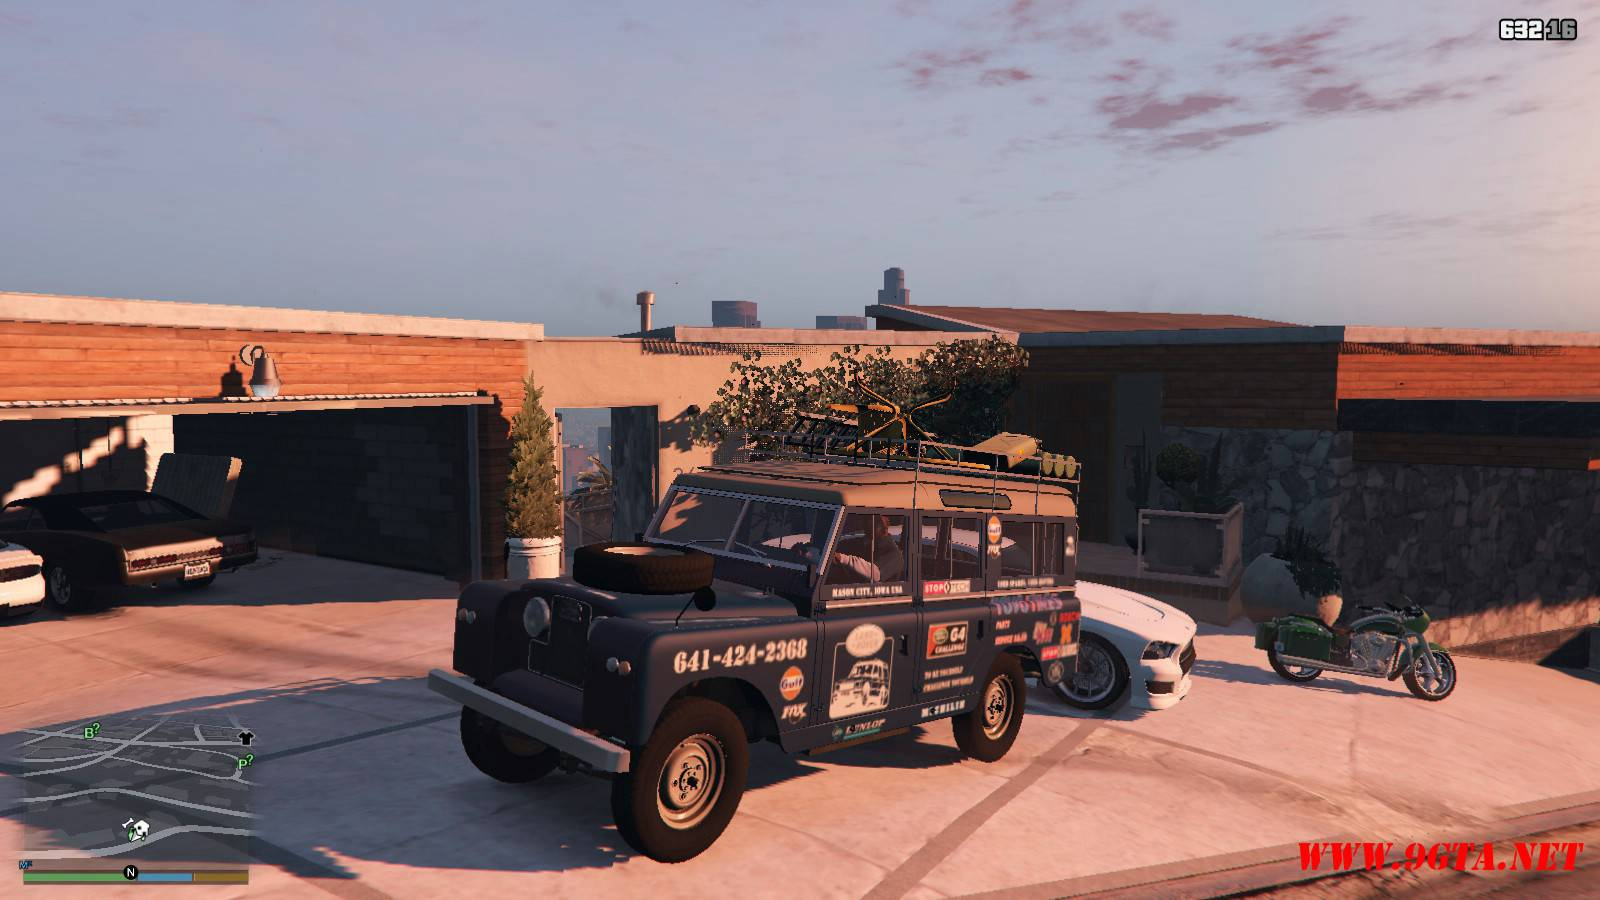 1971 Land Rover Series II Model 109A GTA5 Mods (1)